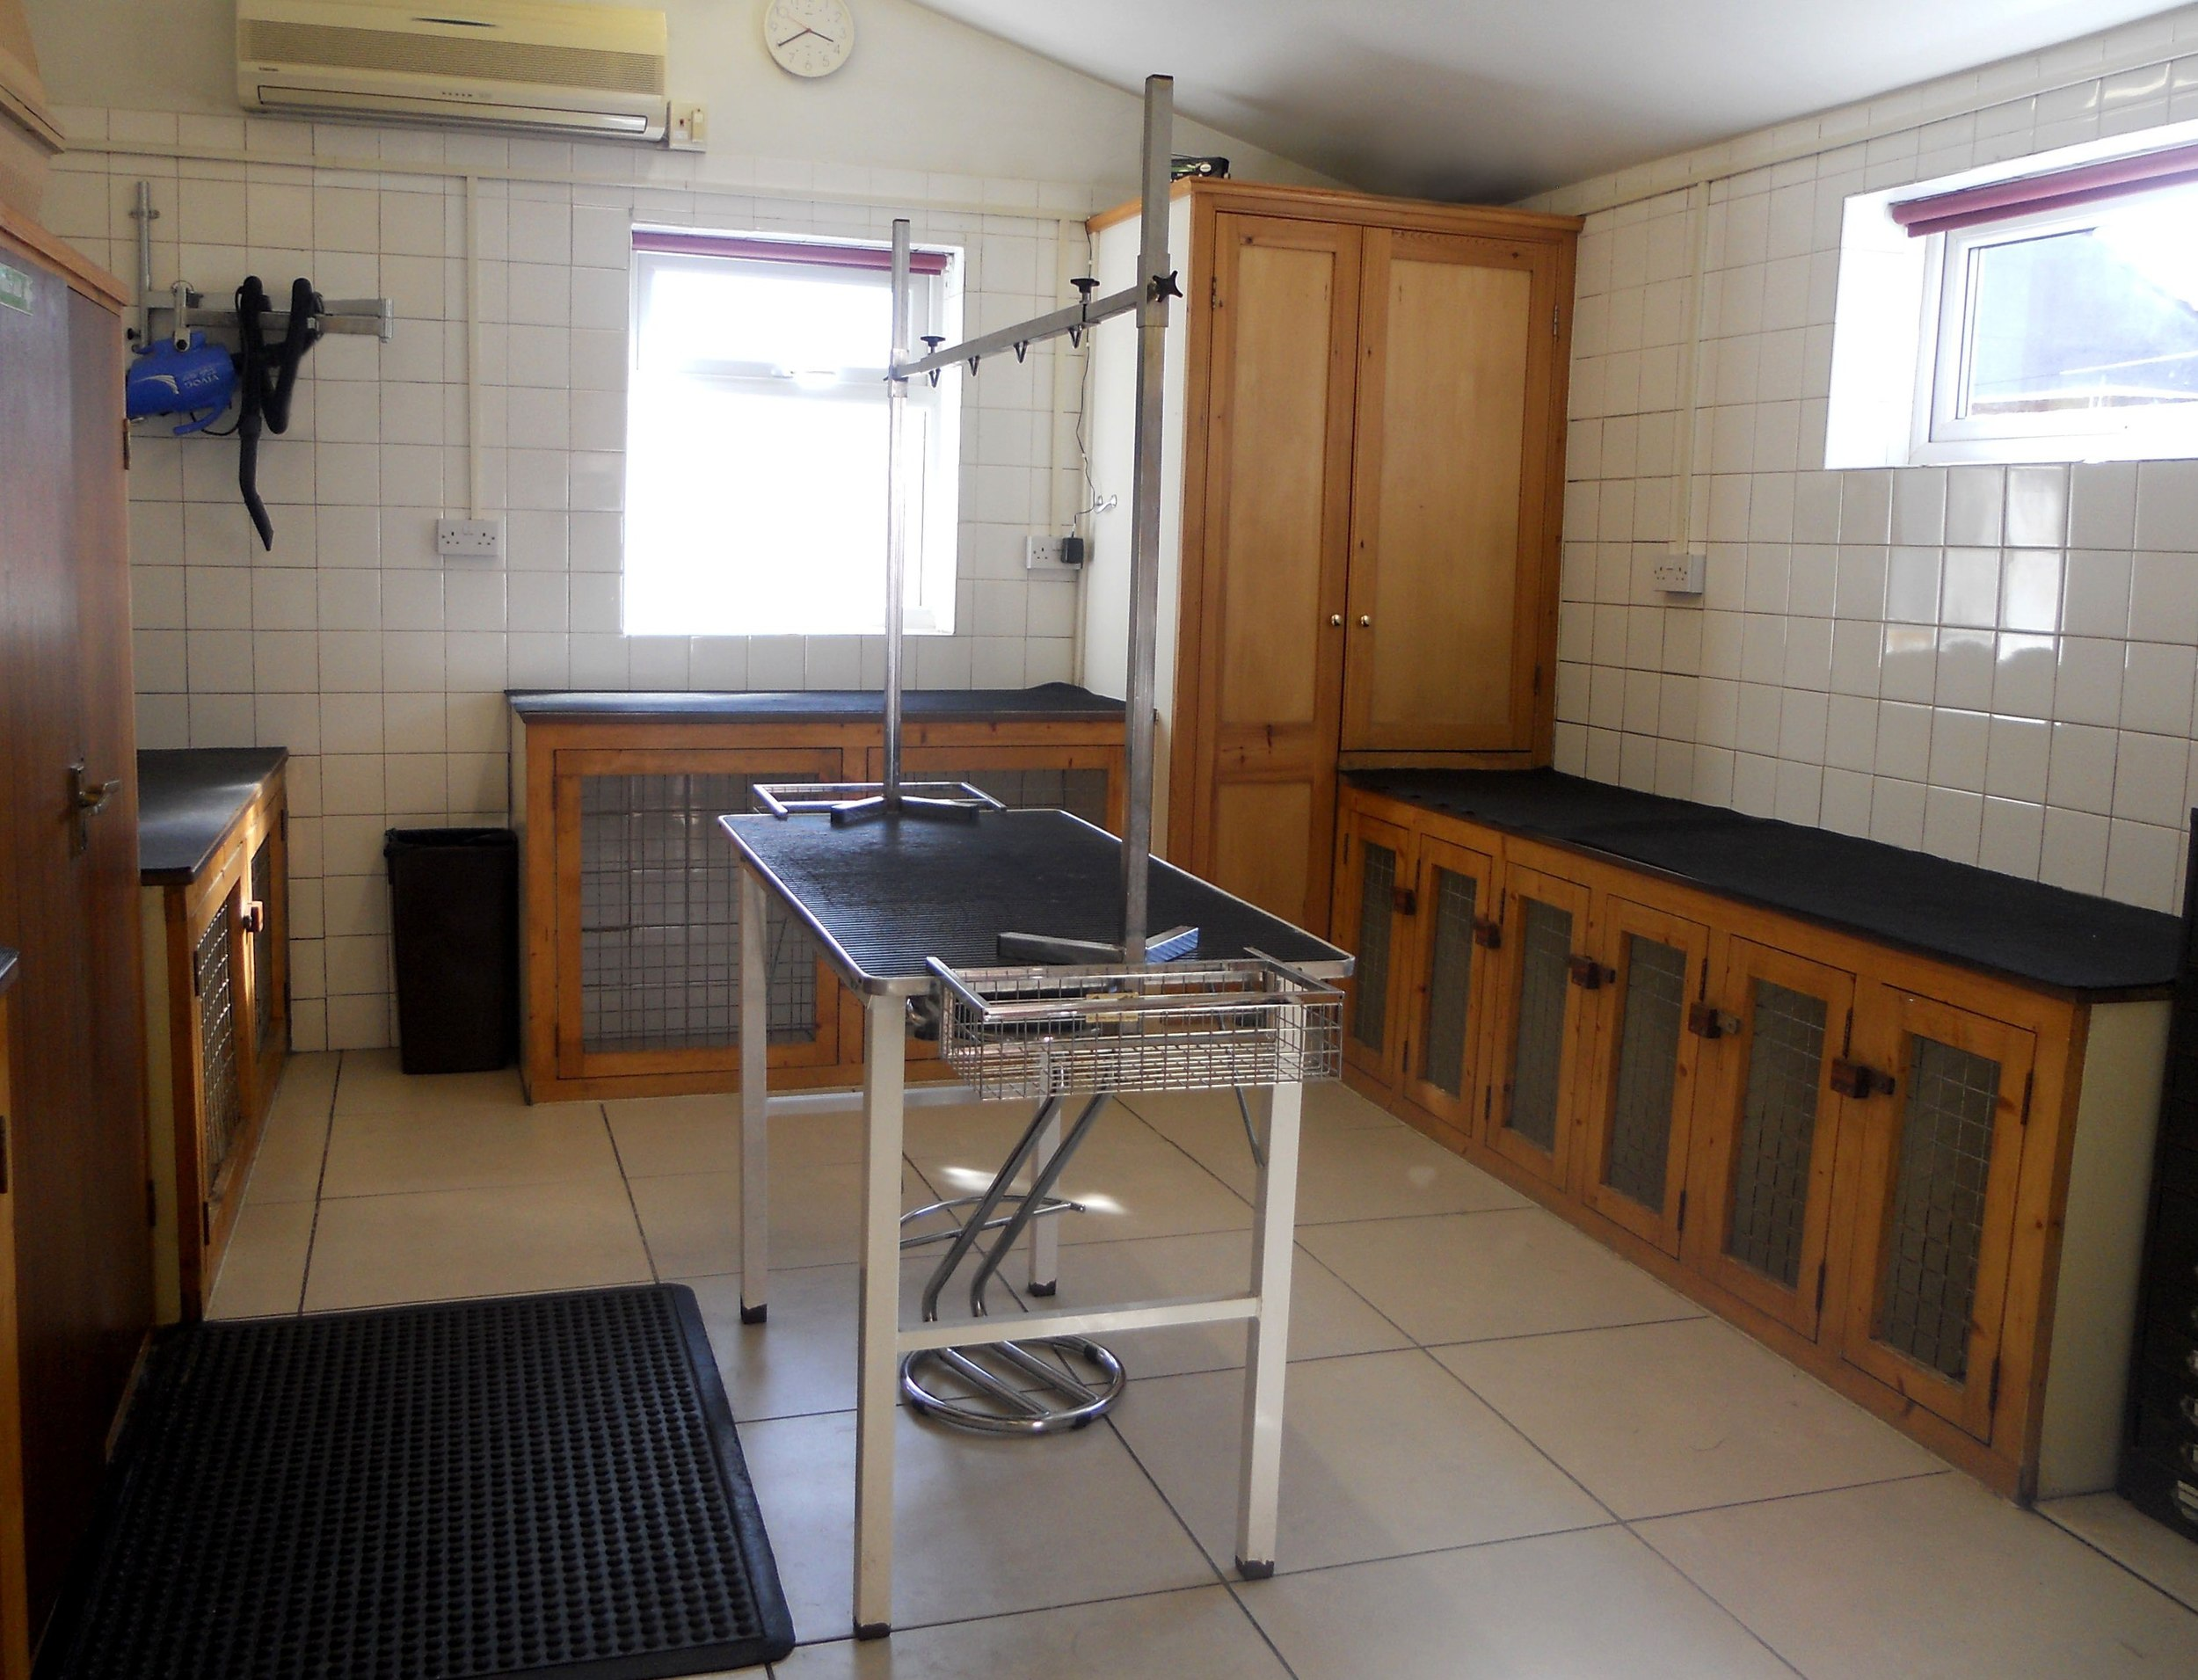 Our fully air-conditioned and tiled Grooming Salon.